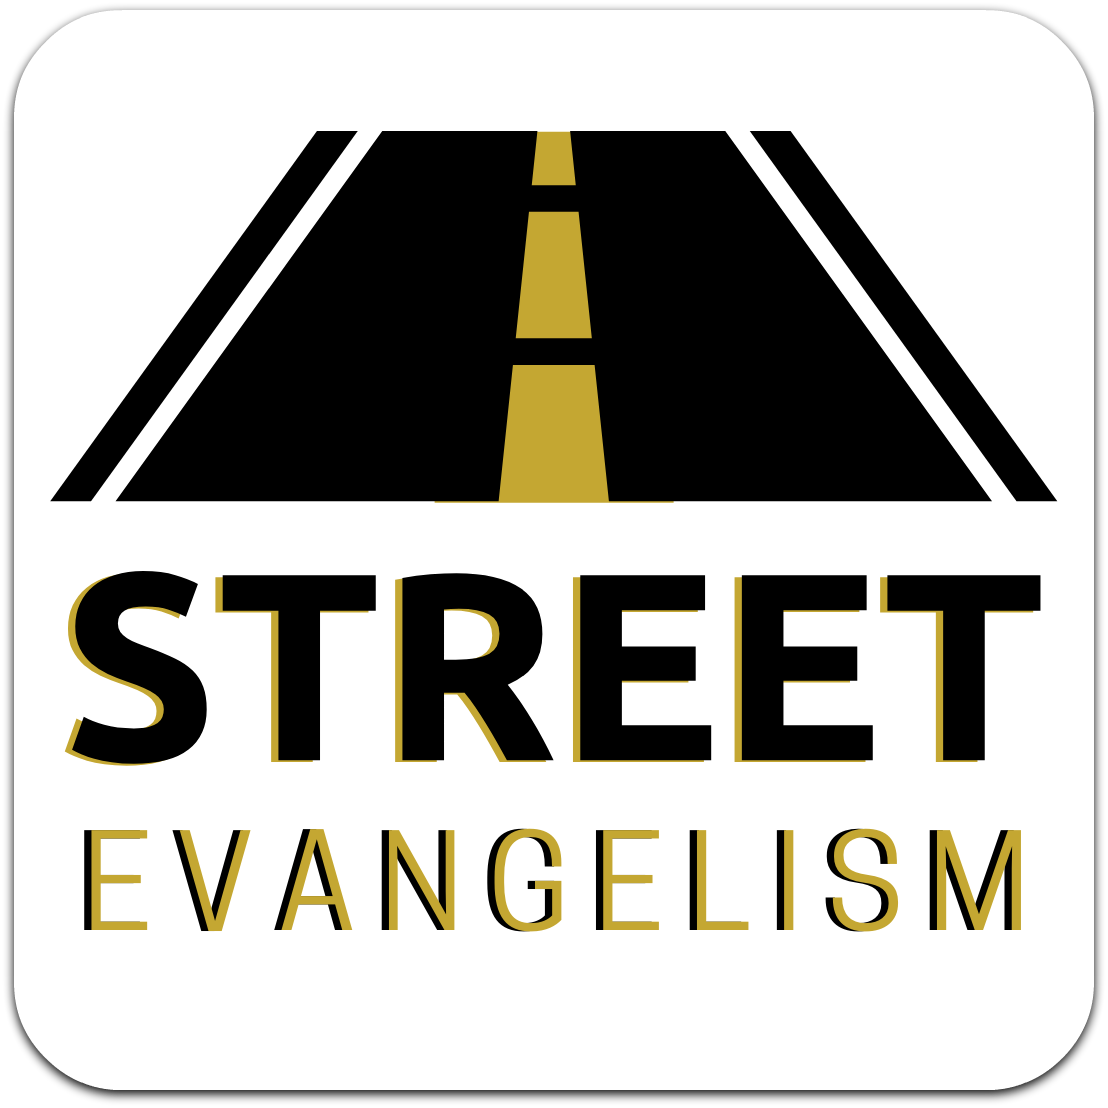 Daytona Dream Center - Street Evangelism